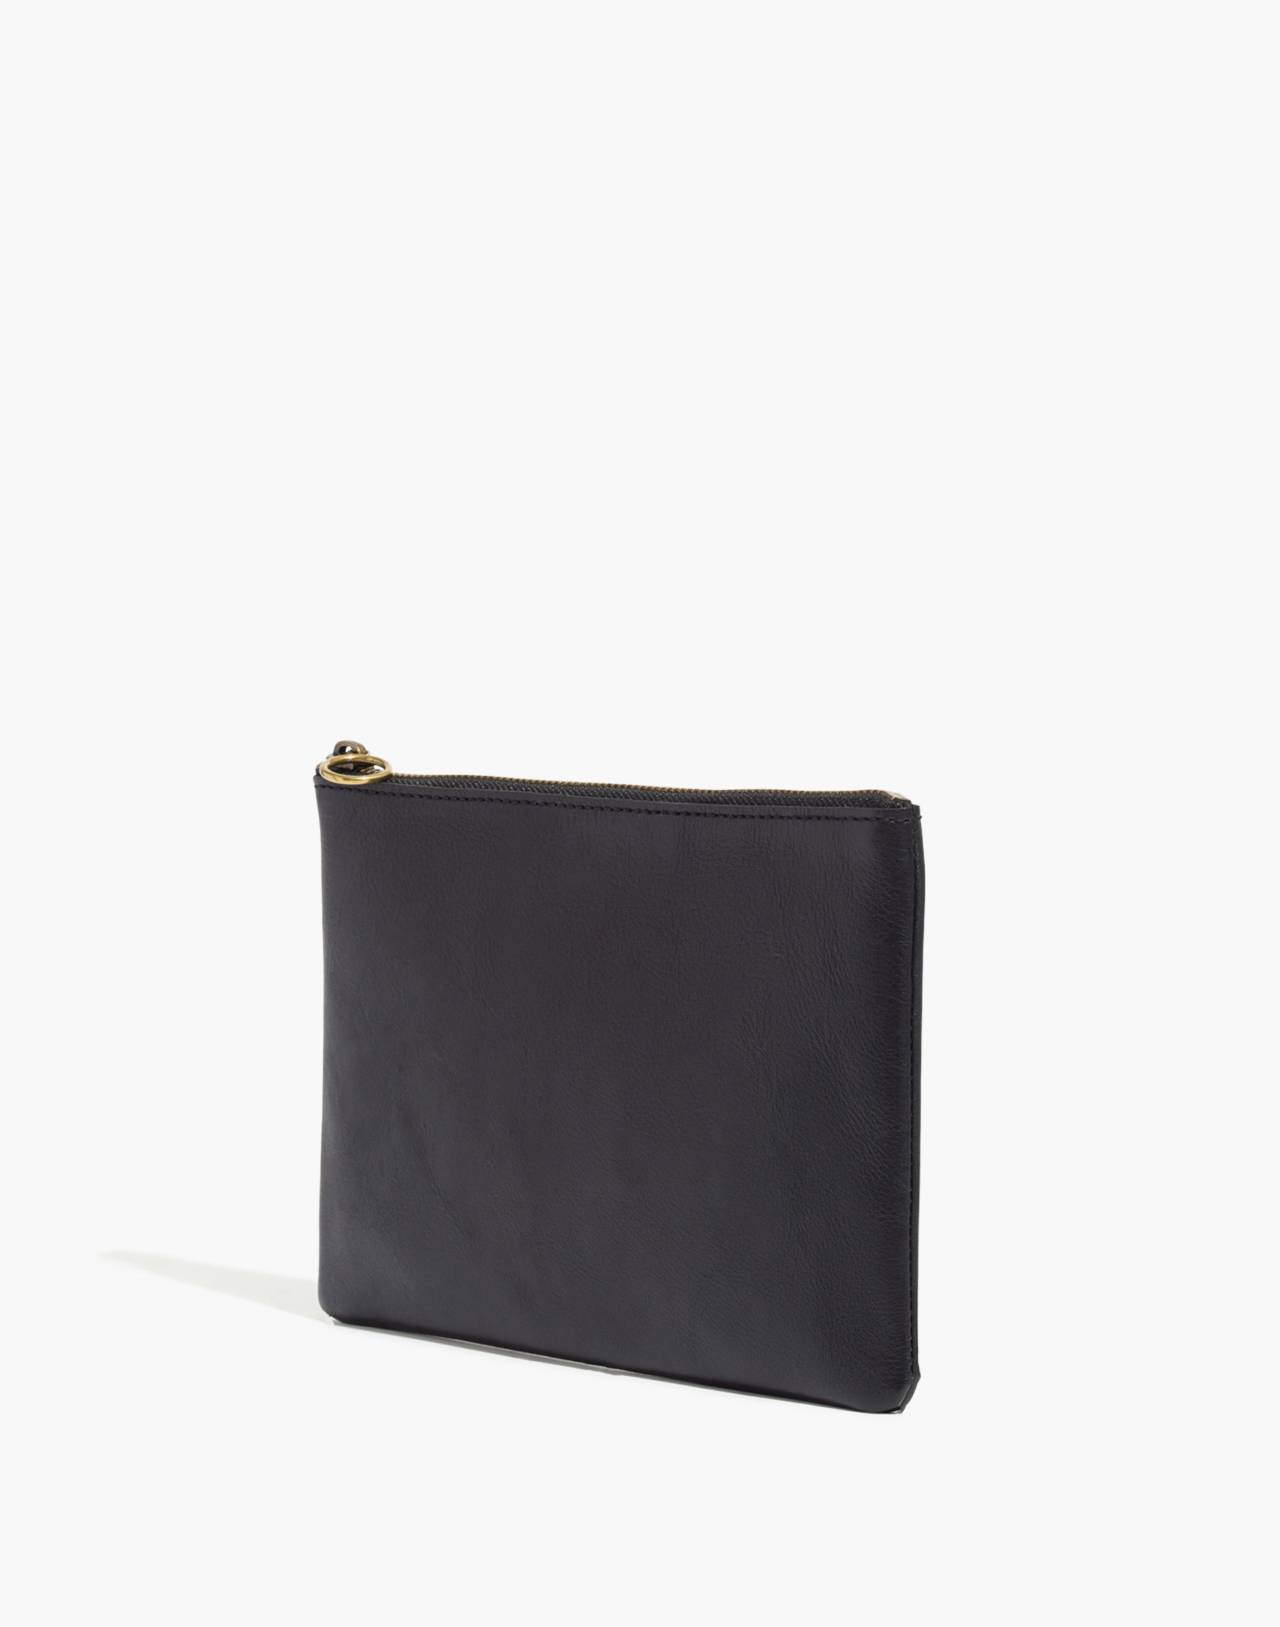 The Leather Pouch Clutch in true black image 2